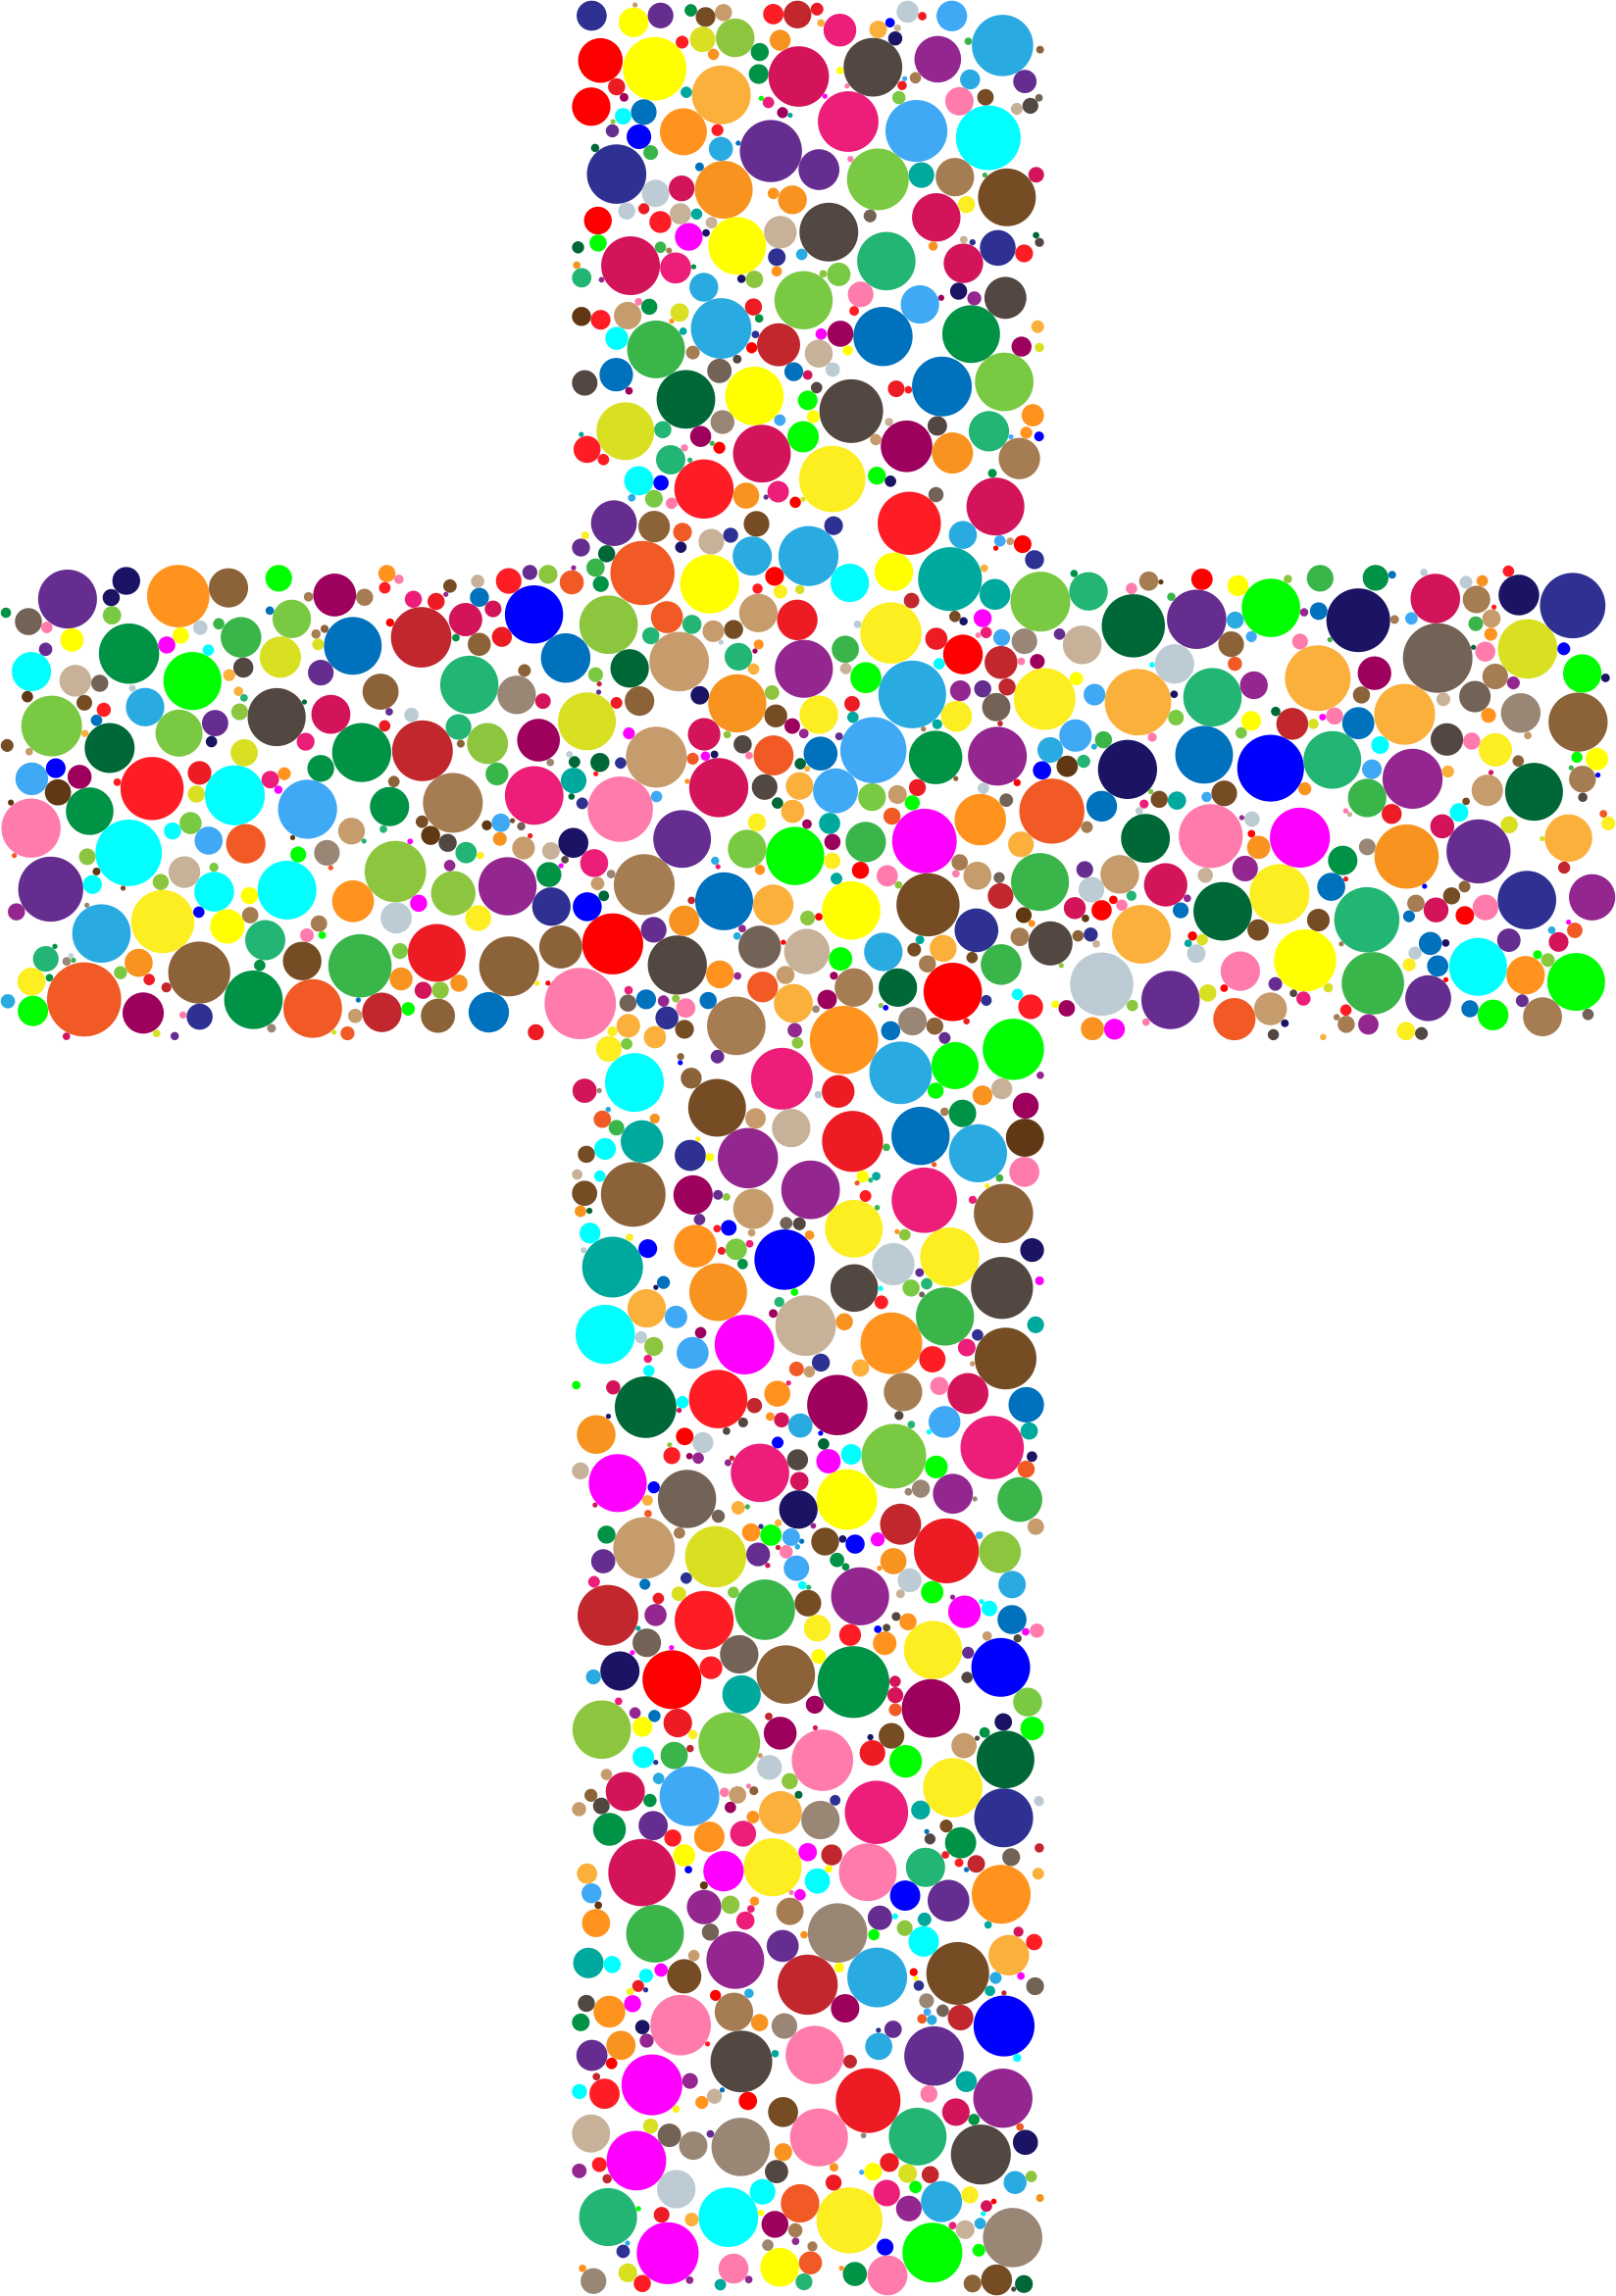 Colorful cross clipart image black and white Clipart - Colorful Cross Circles image black and white